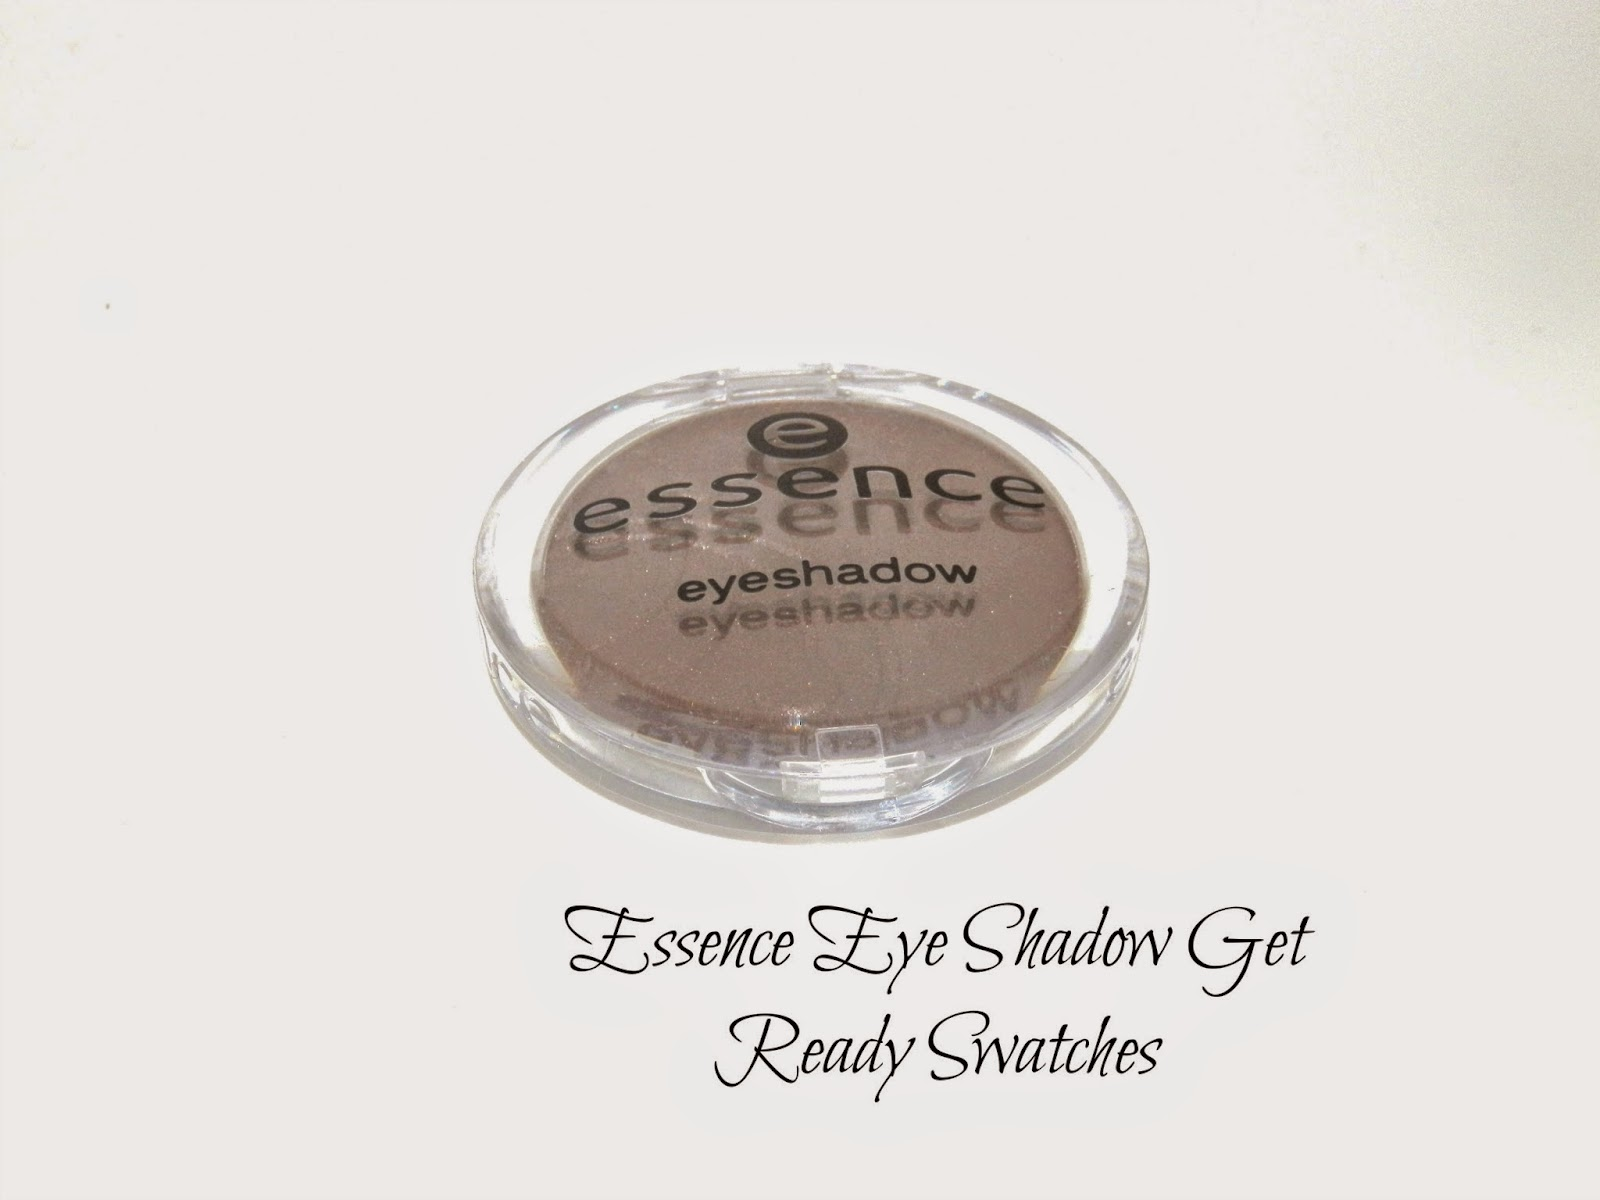 Essence Eye Shadow Get Ready Swatches